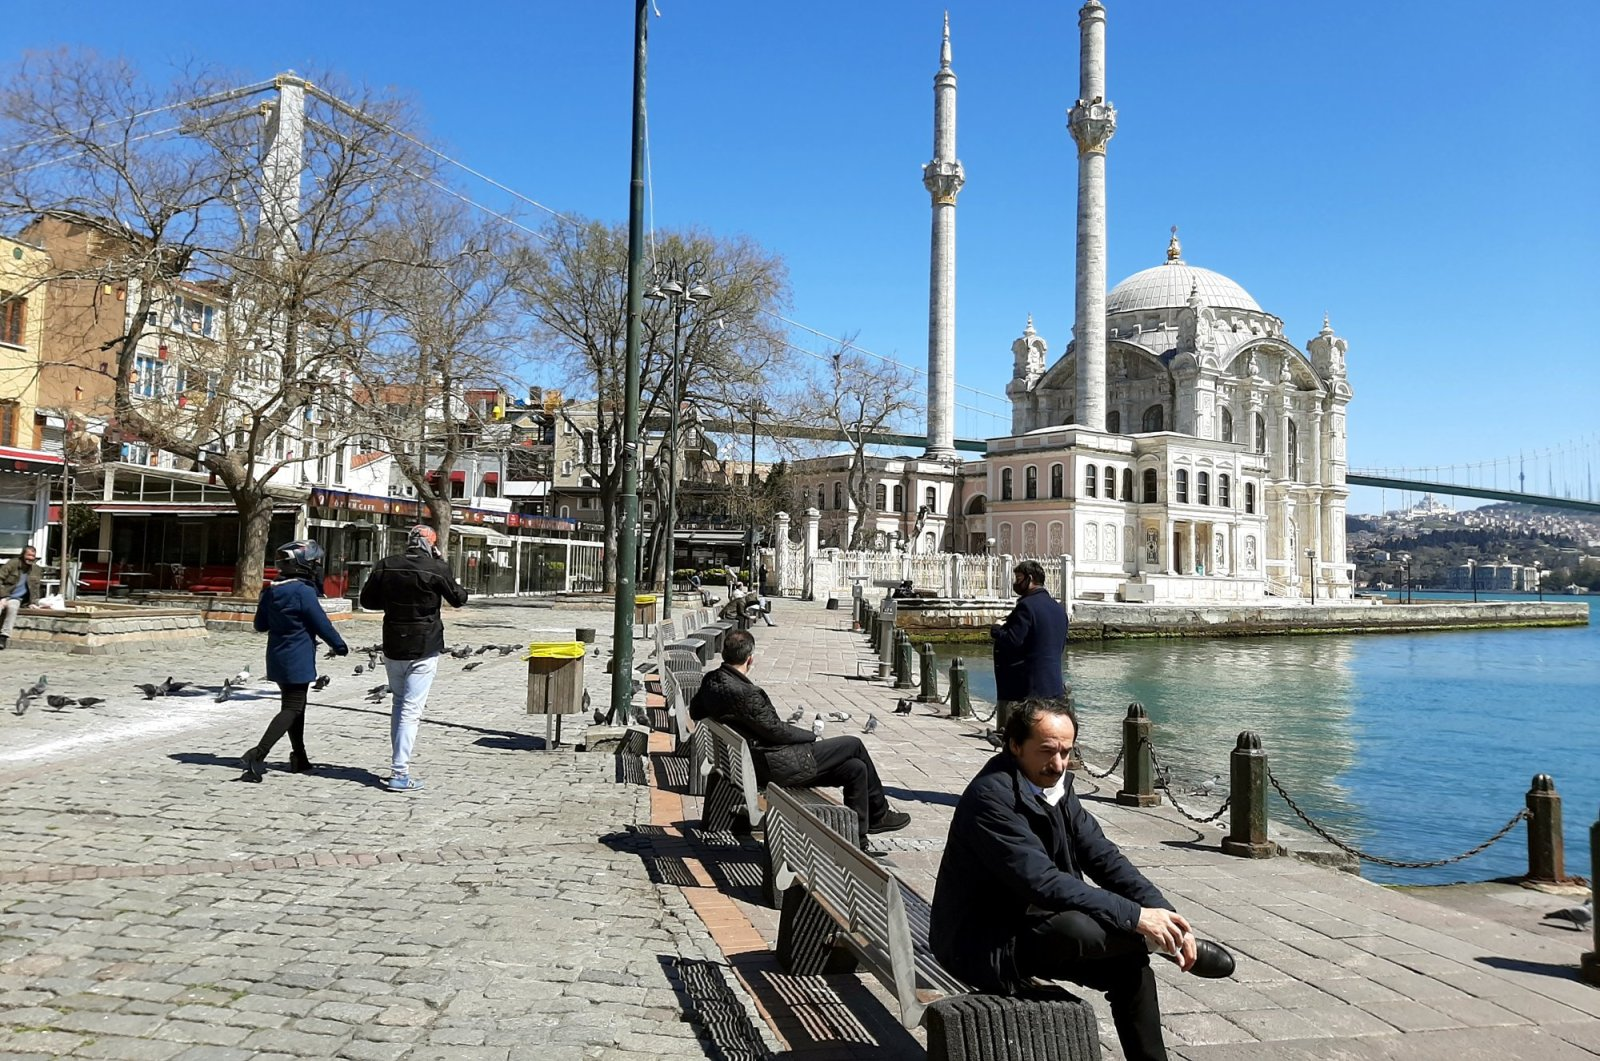 People sit on the benches in Ortaköy, Istanbul, Turkey, April 9, 2020. (Photo by Mustafa Kaya)